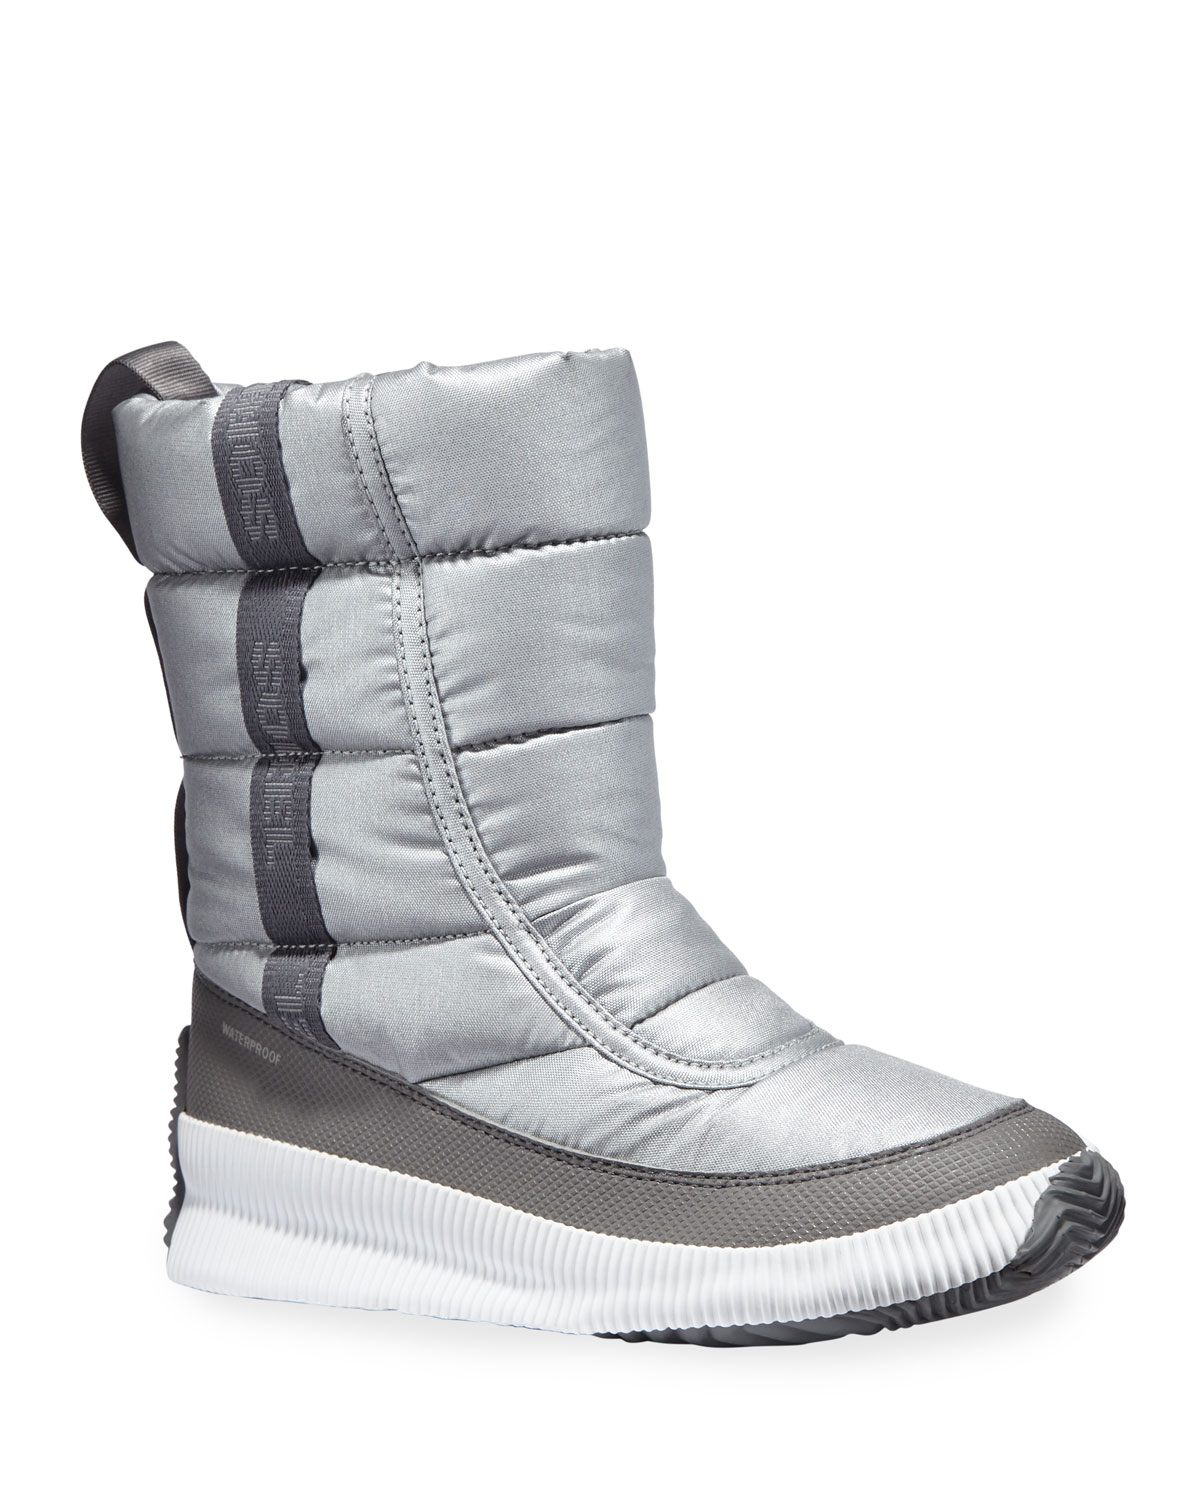 Out 'N About Mid Puffy Metallic Waterproof Boots